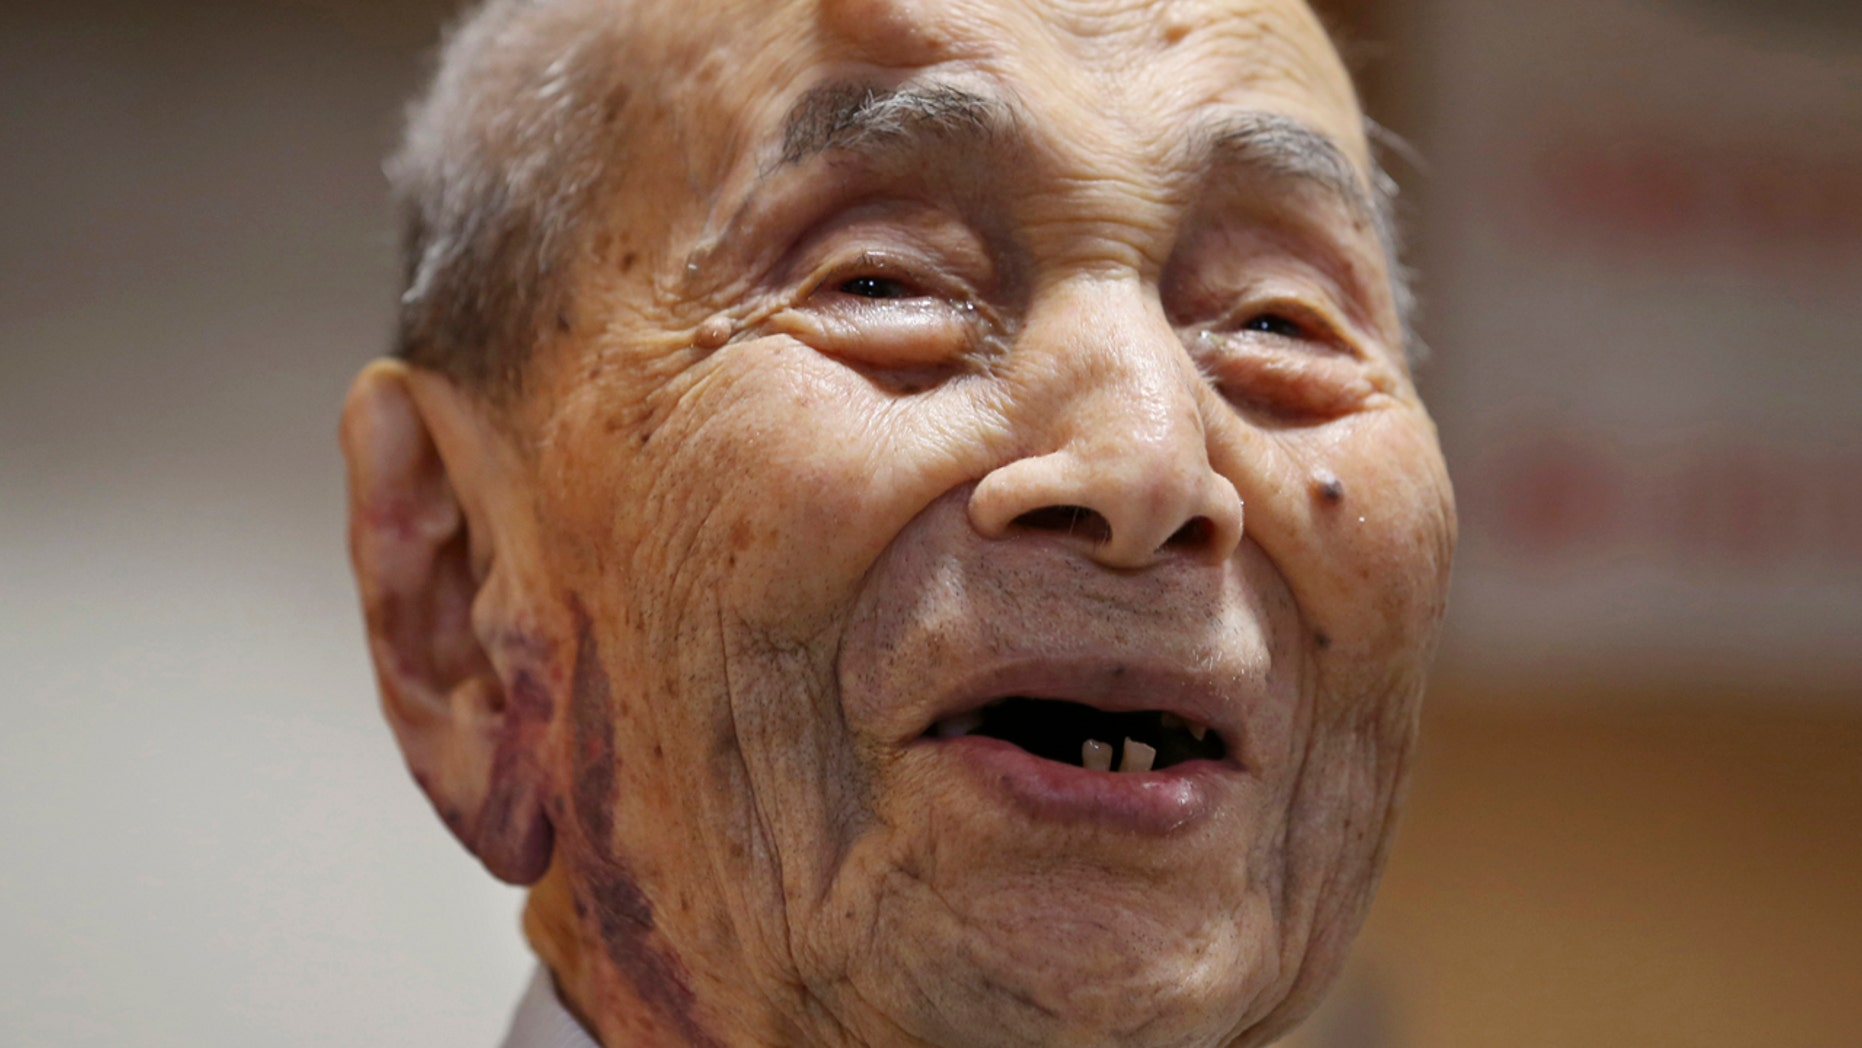 FILE - In this Aug. 21, 2015 file photo, Yasutaro Koide smiles upon being formally recognized as the world's oldest man by the Guinness World Records at a nursing home in Nagoya, central Japan. (AP Photo/Koji Sasahara, File)